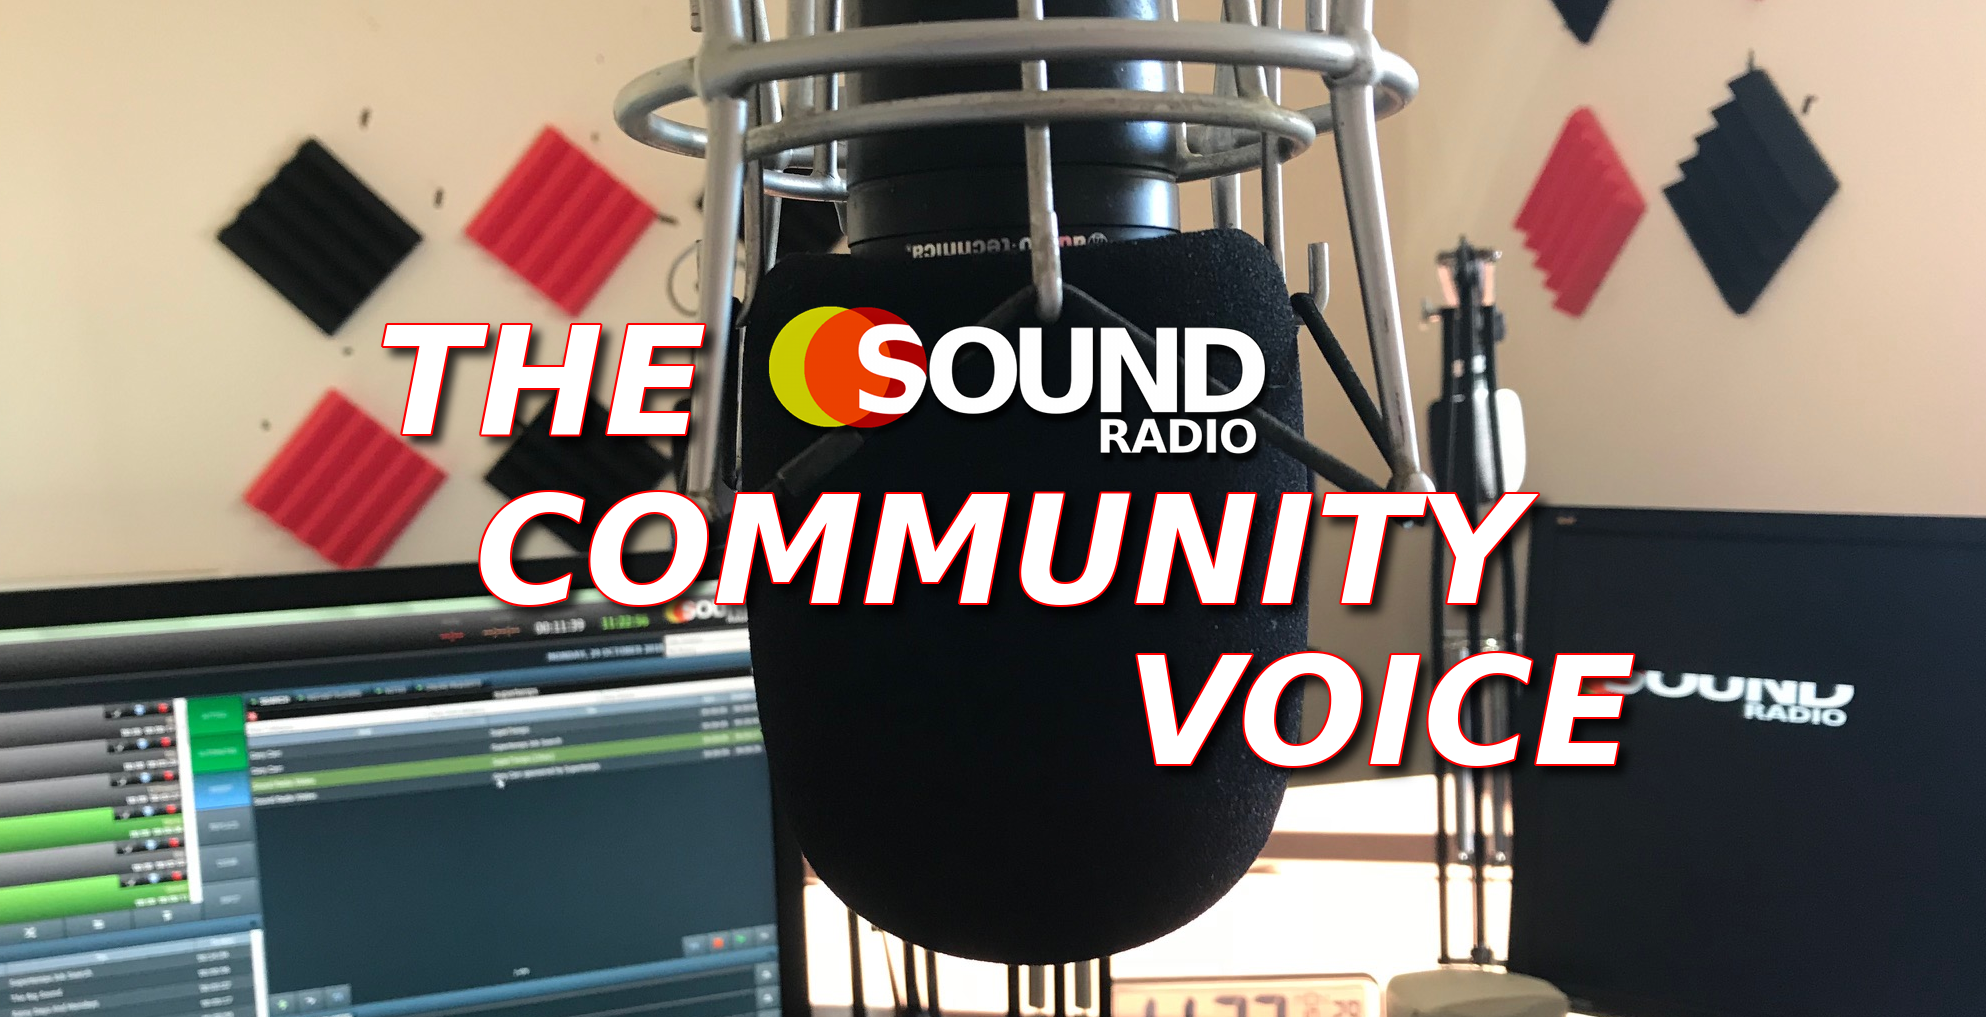 The Community Voice – Tuesday 27th November 2018